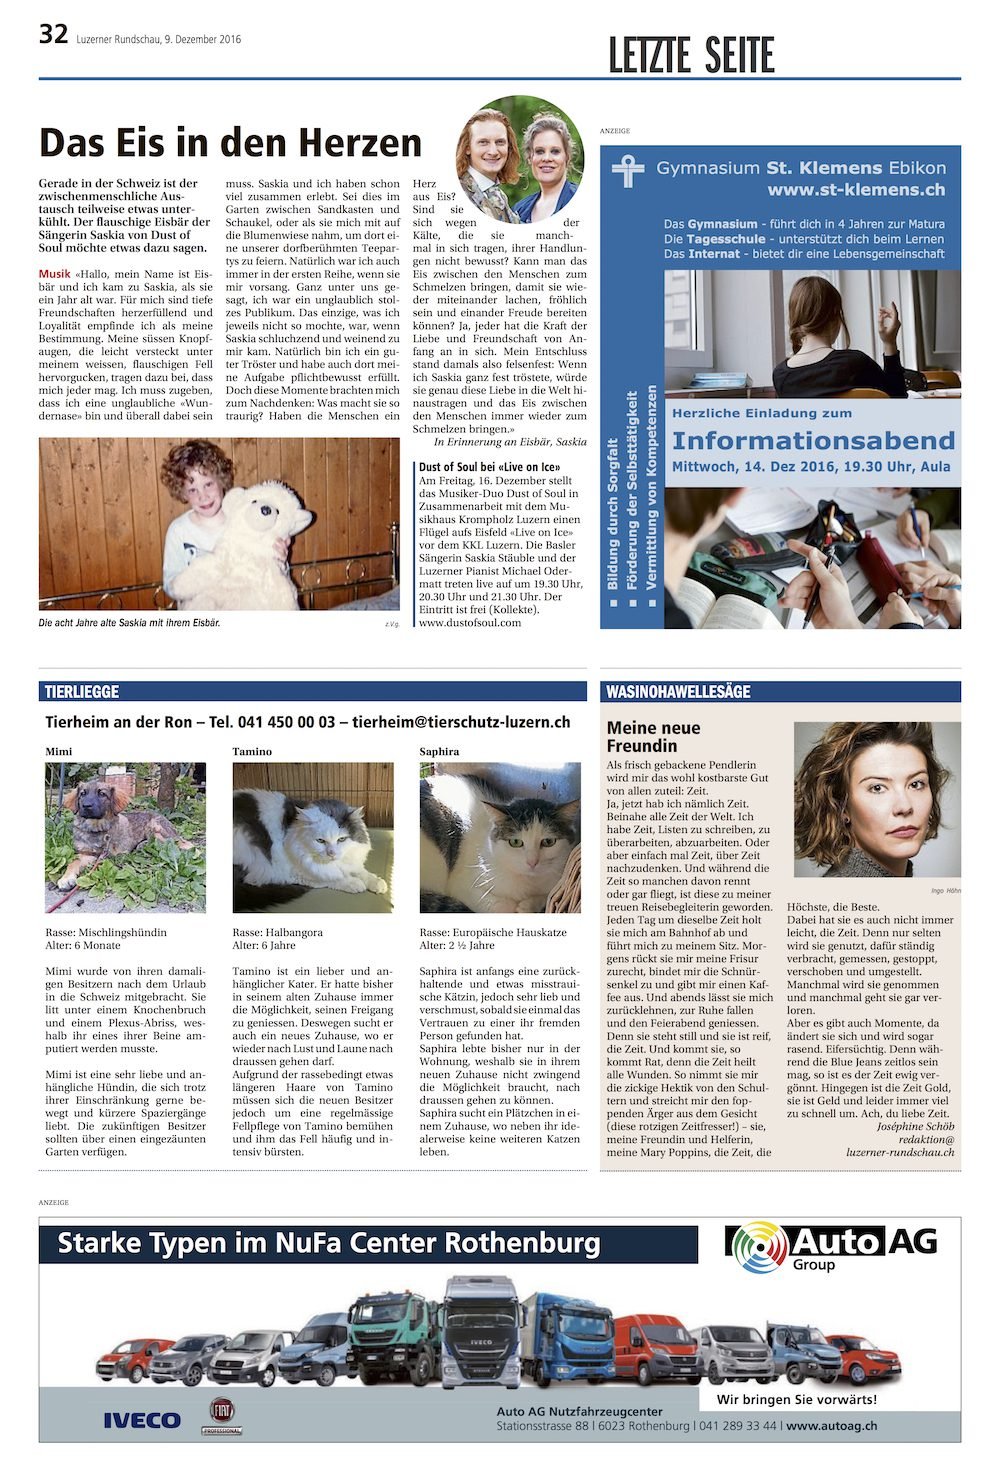 Luzerner Rundschau as of Friday, 9 December 2016